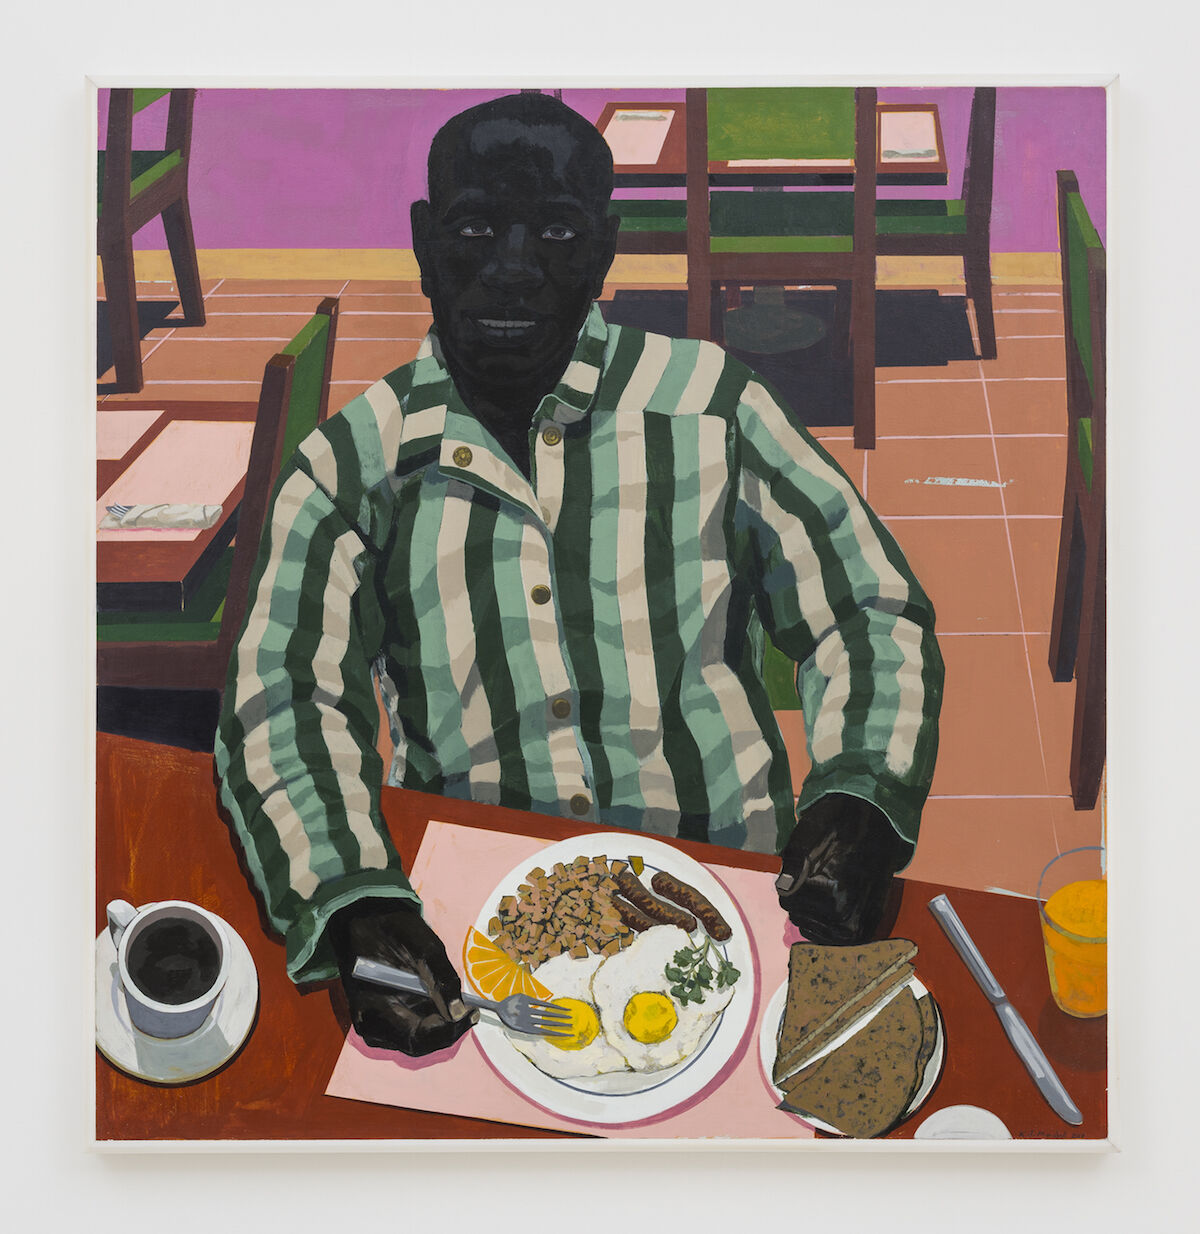 Kerry James Marshall, Untitled (Two Eggs Over Medium, Sausage, Hash Browns, Whole Wheat Toast), 2017. Courtesy the artist and David Zwirner, London.